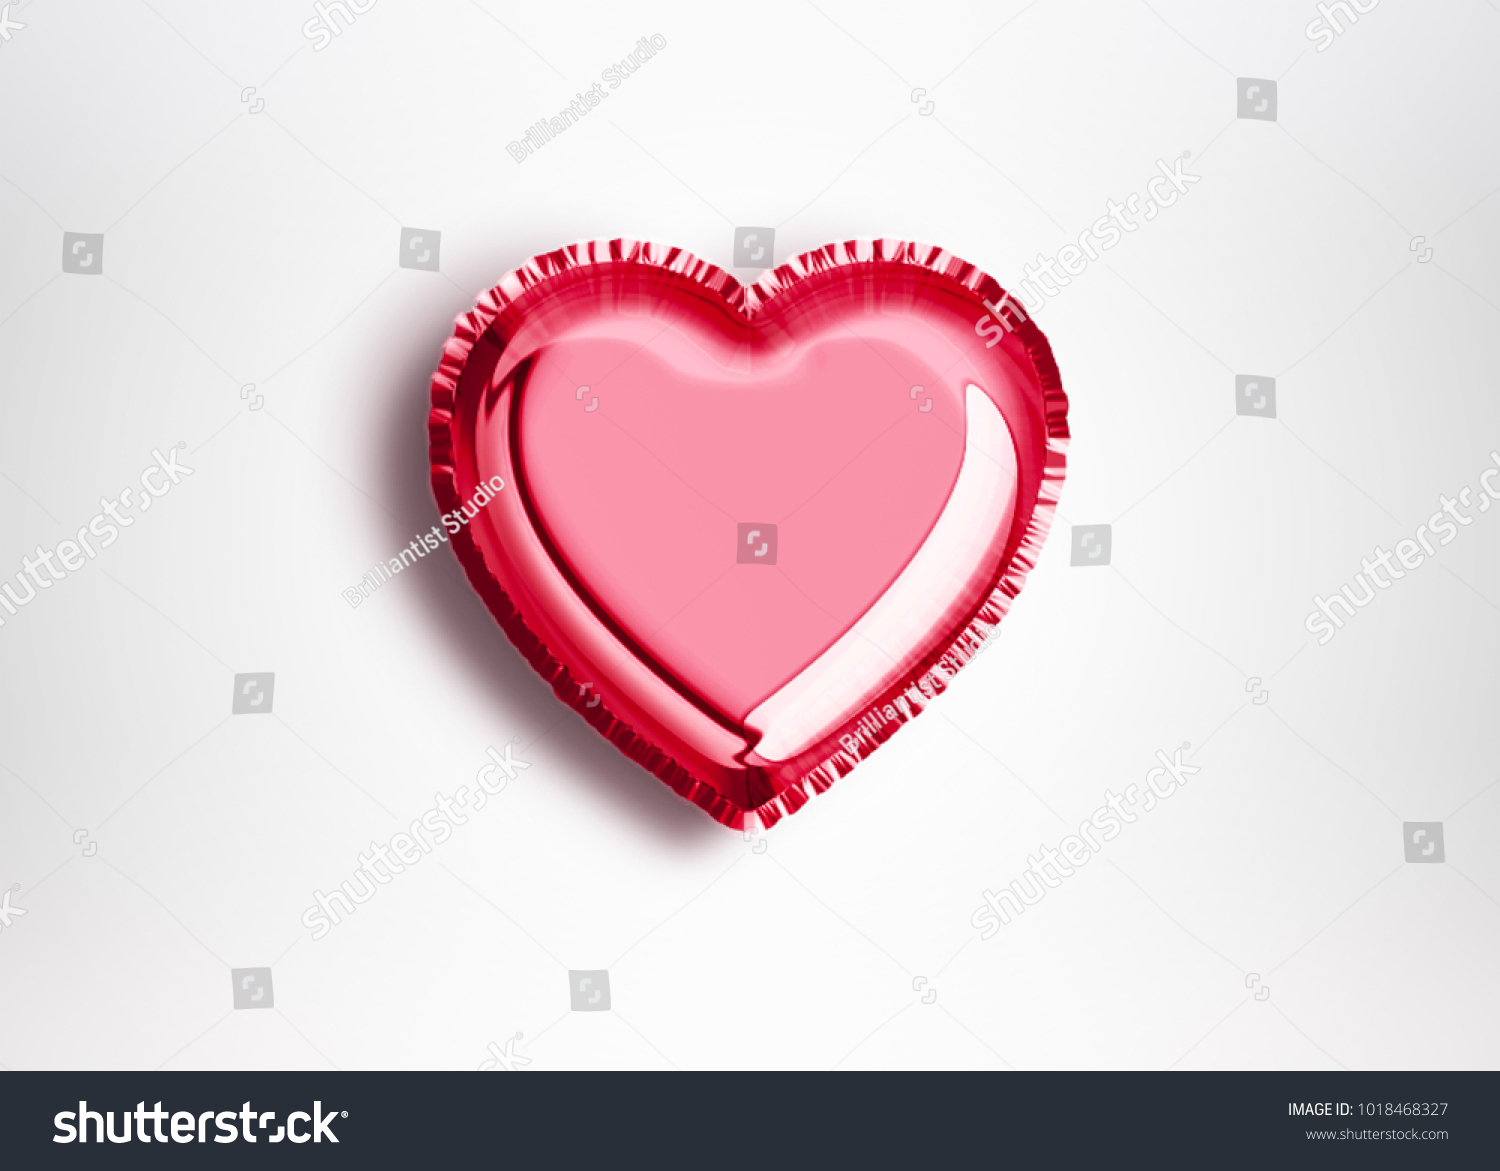 Heart Balloon Love Symbolic Design 3 D Stock Illustration 1018468327